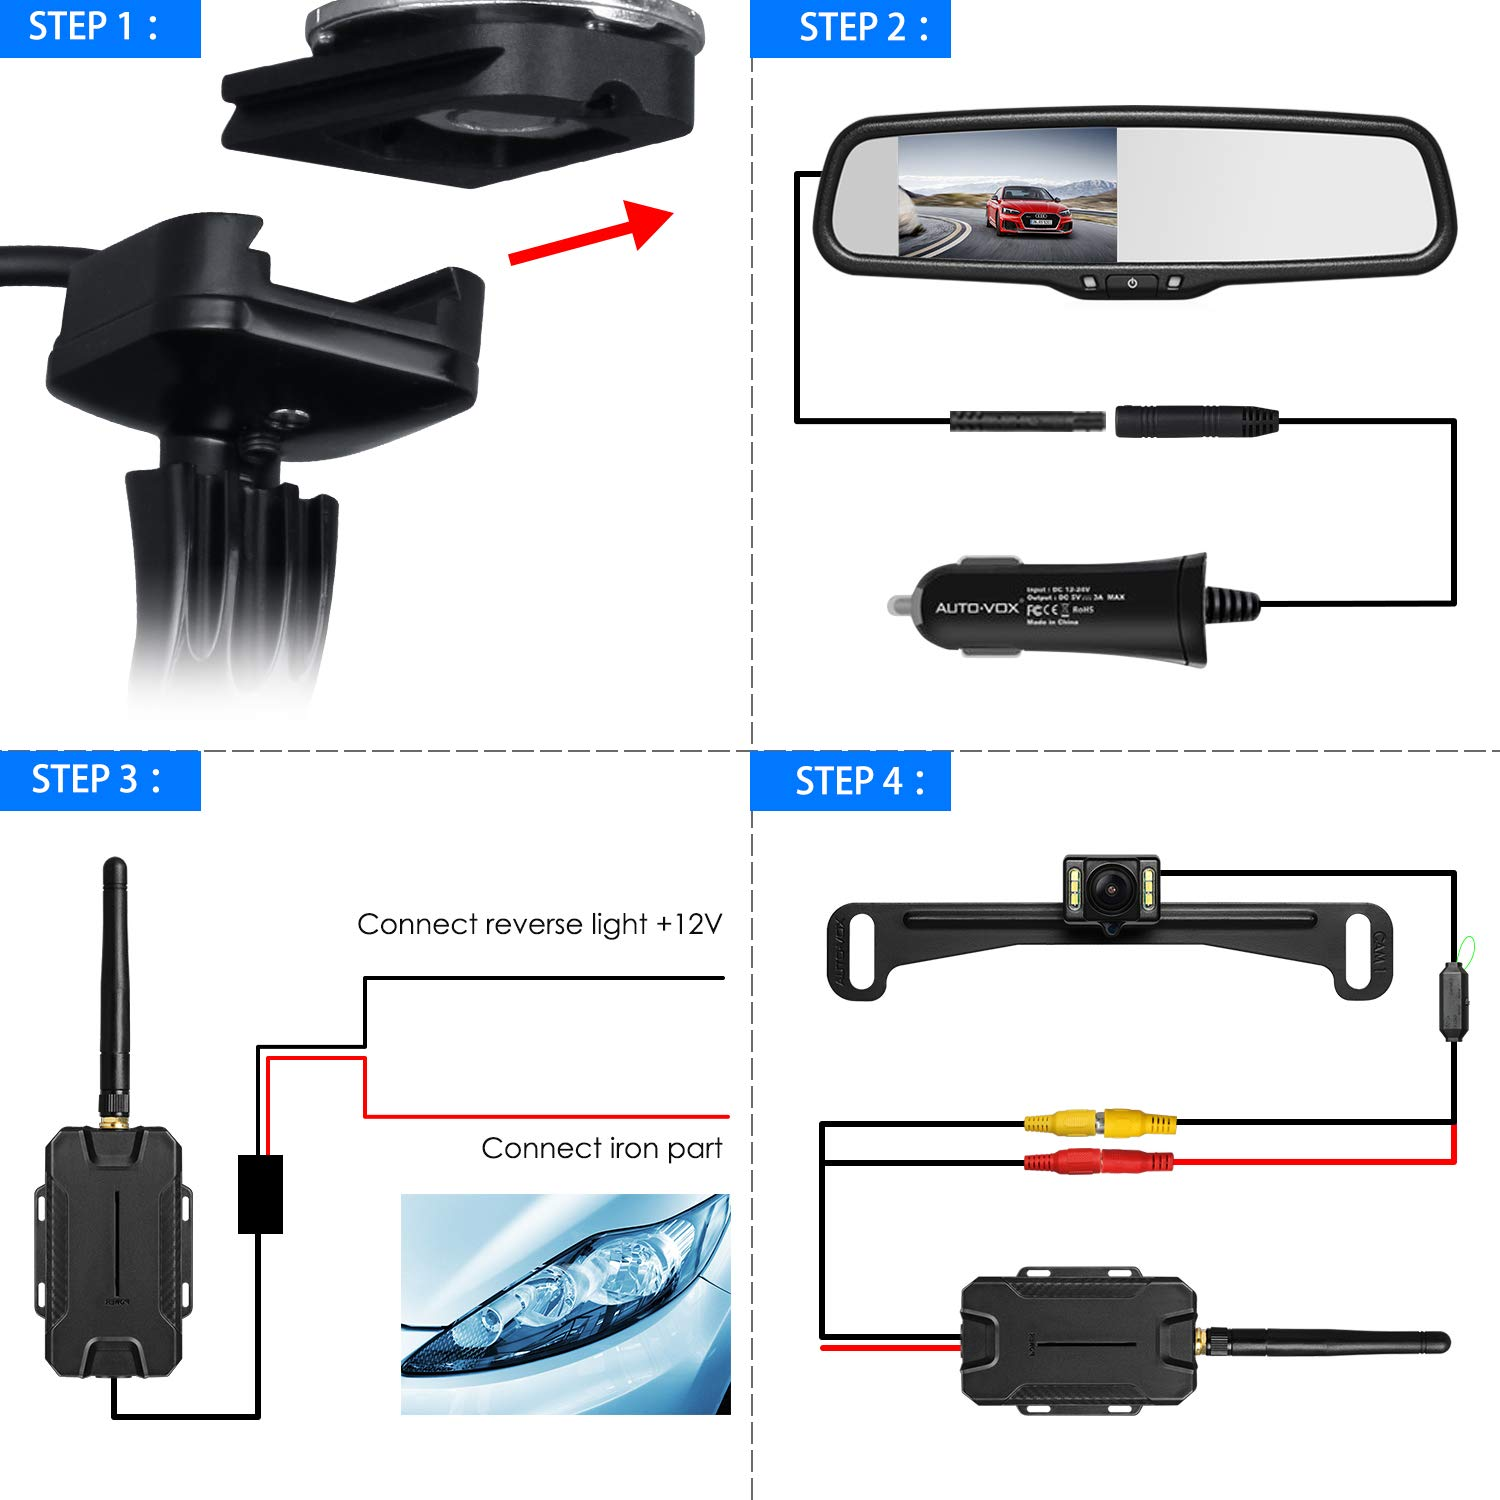 AUTO VOX T1400 Upgrade Wireless Backup Camera Kit, Easy Installation with No Wiring, No Interference, OEM Look with IP 68 Waterproof Super Night Vision Rear View Camera by AUTO-VOX (Image #4)